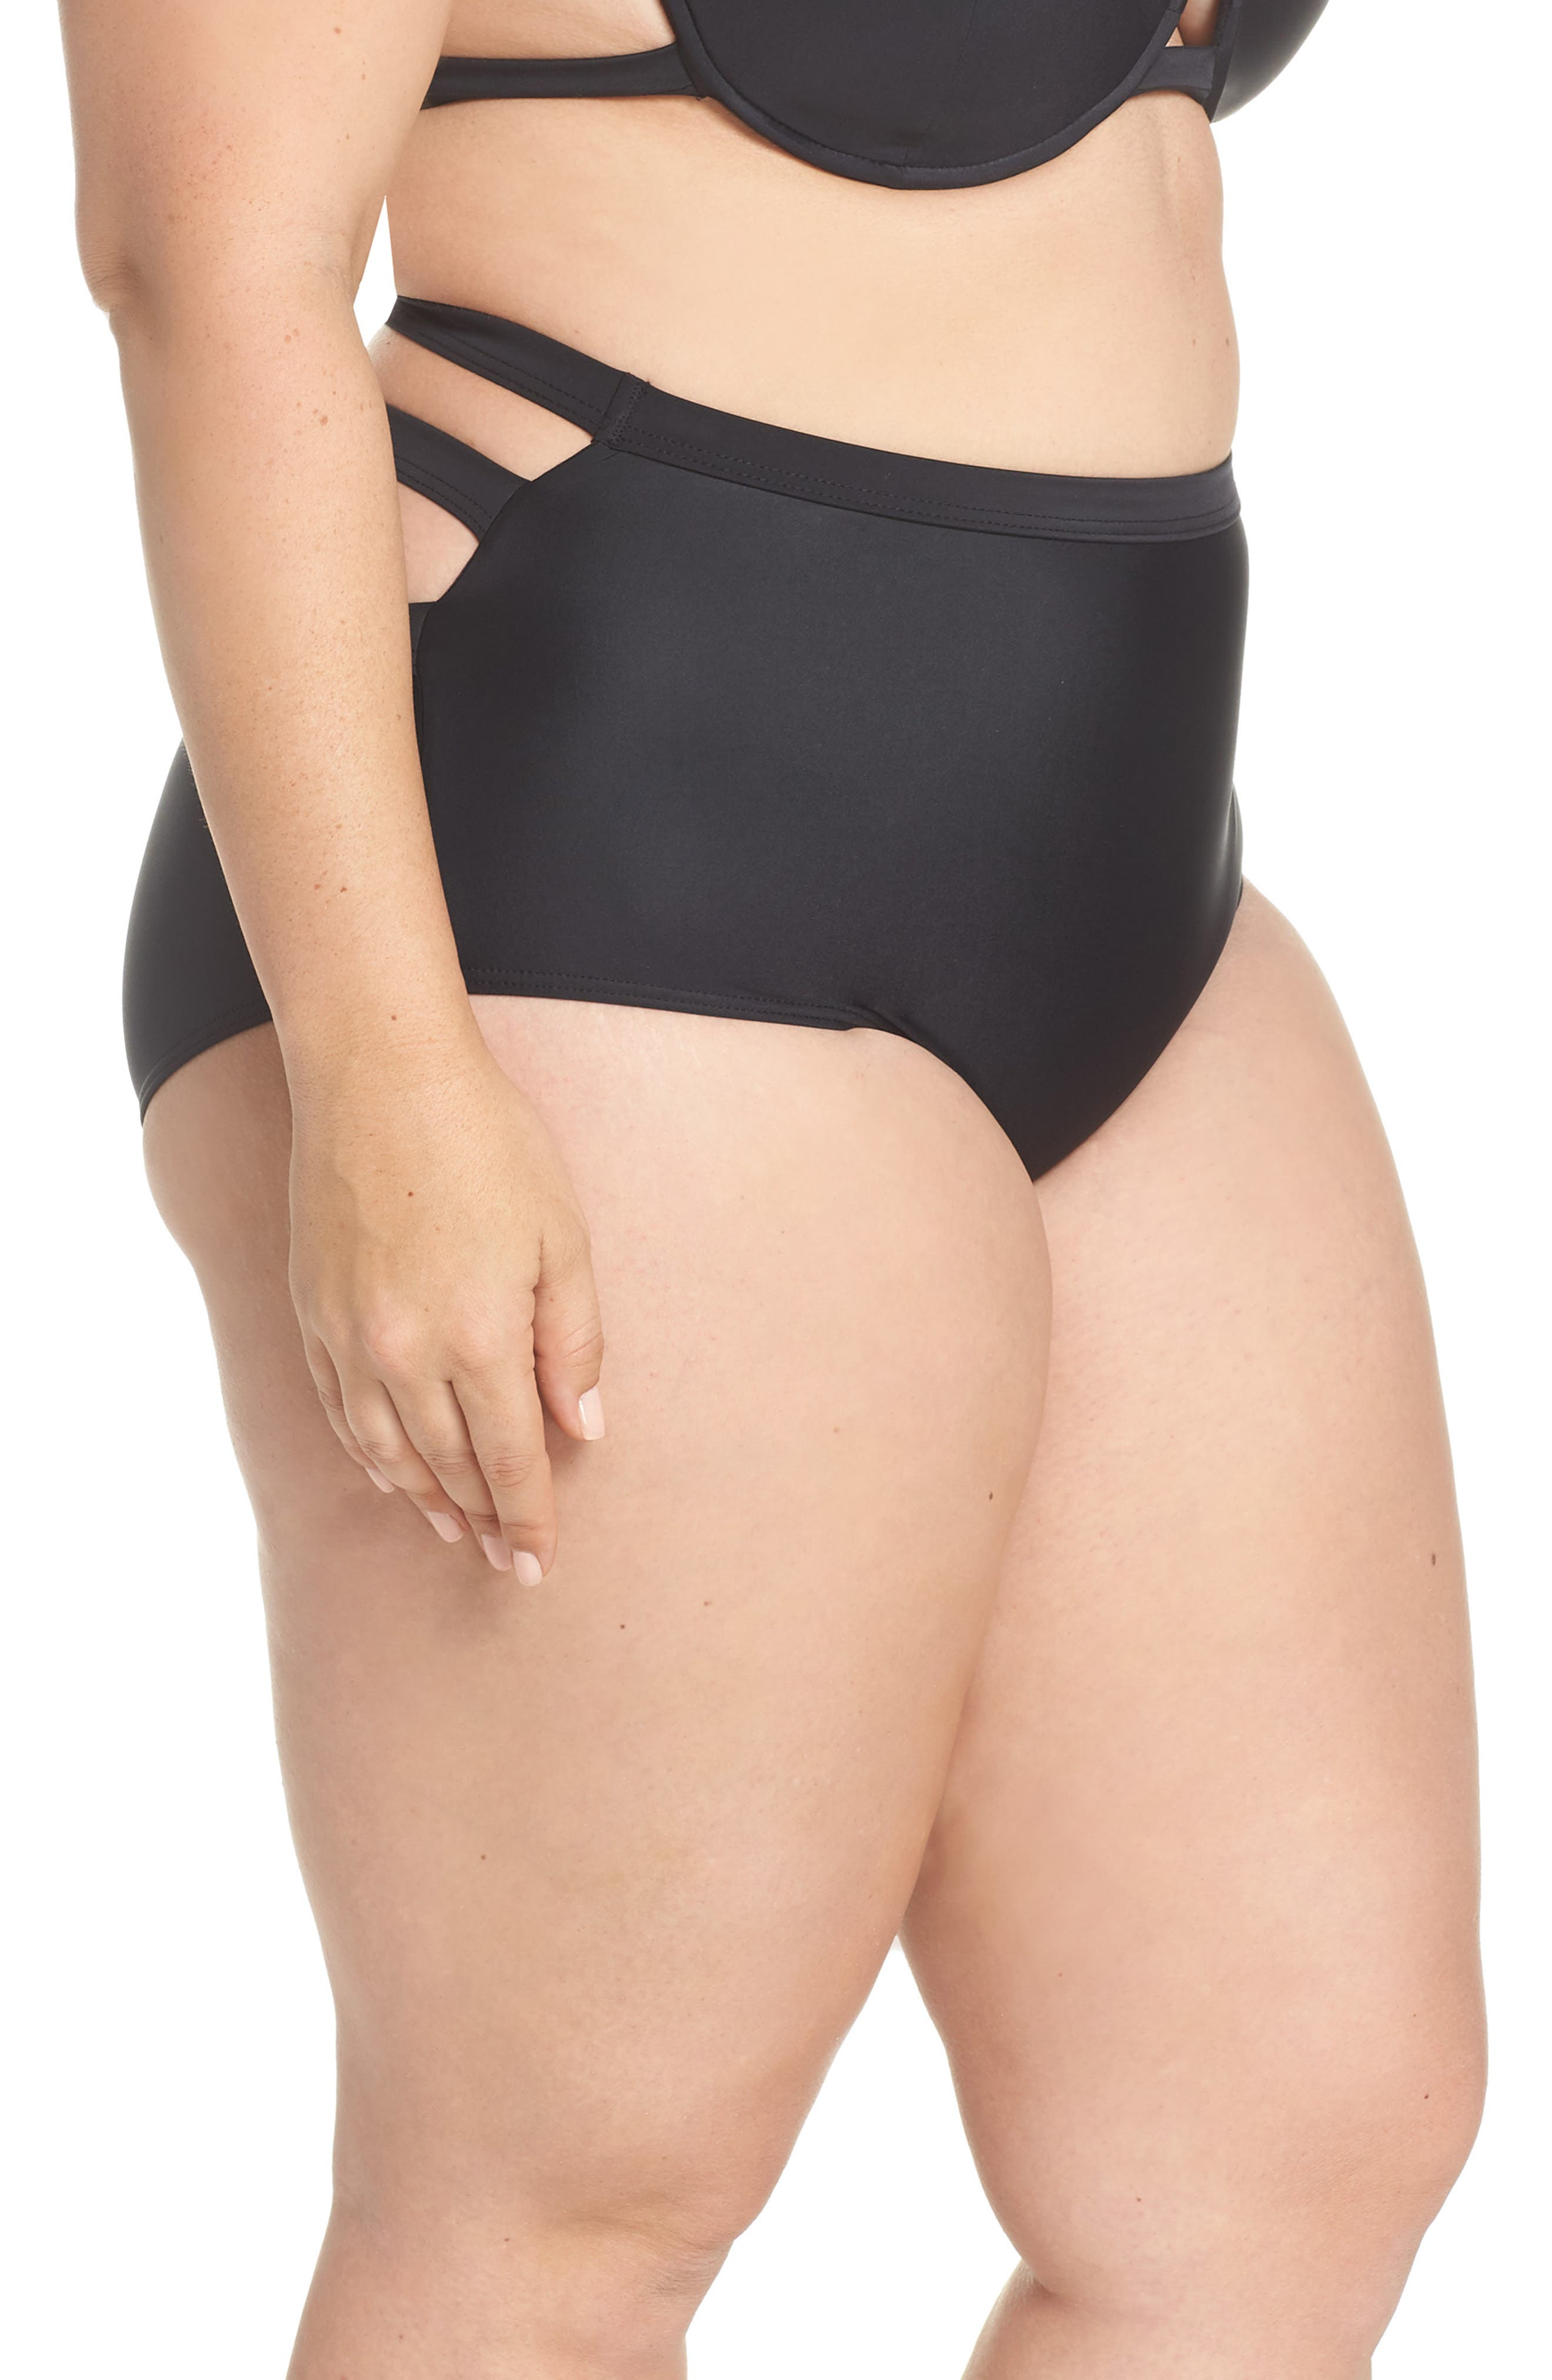 Bouloux II High Waist Bikini Bottoms,                             Alternate thumbnail 10, color,                             Black